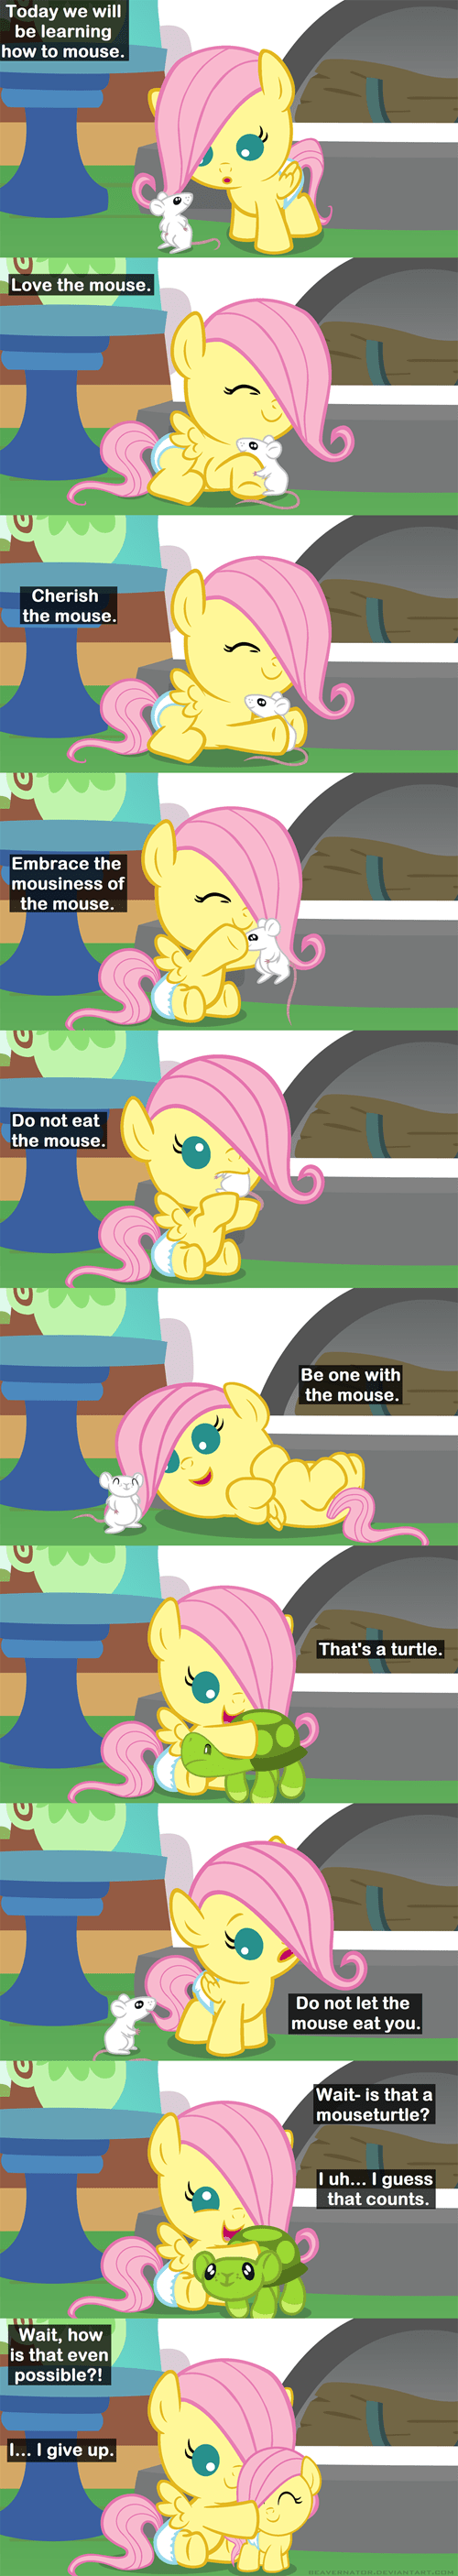 cute,fluttershy,squee,mouse